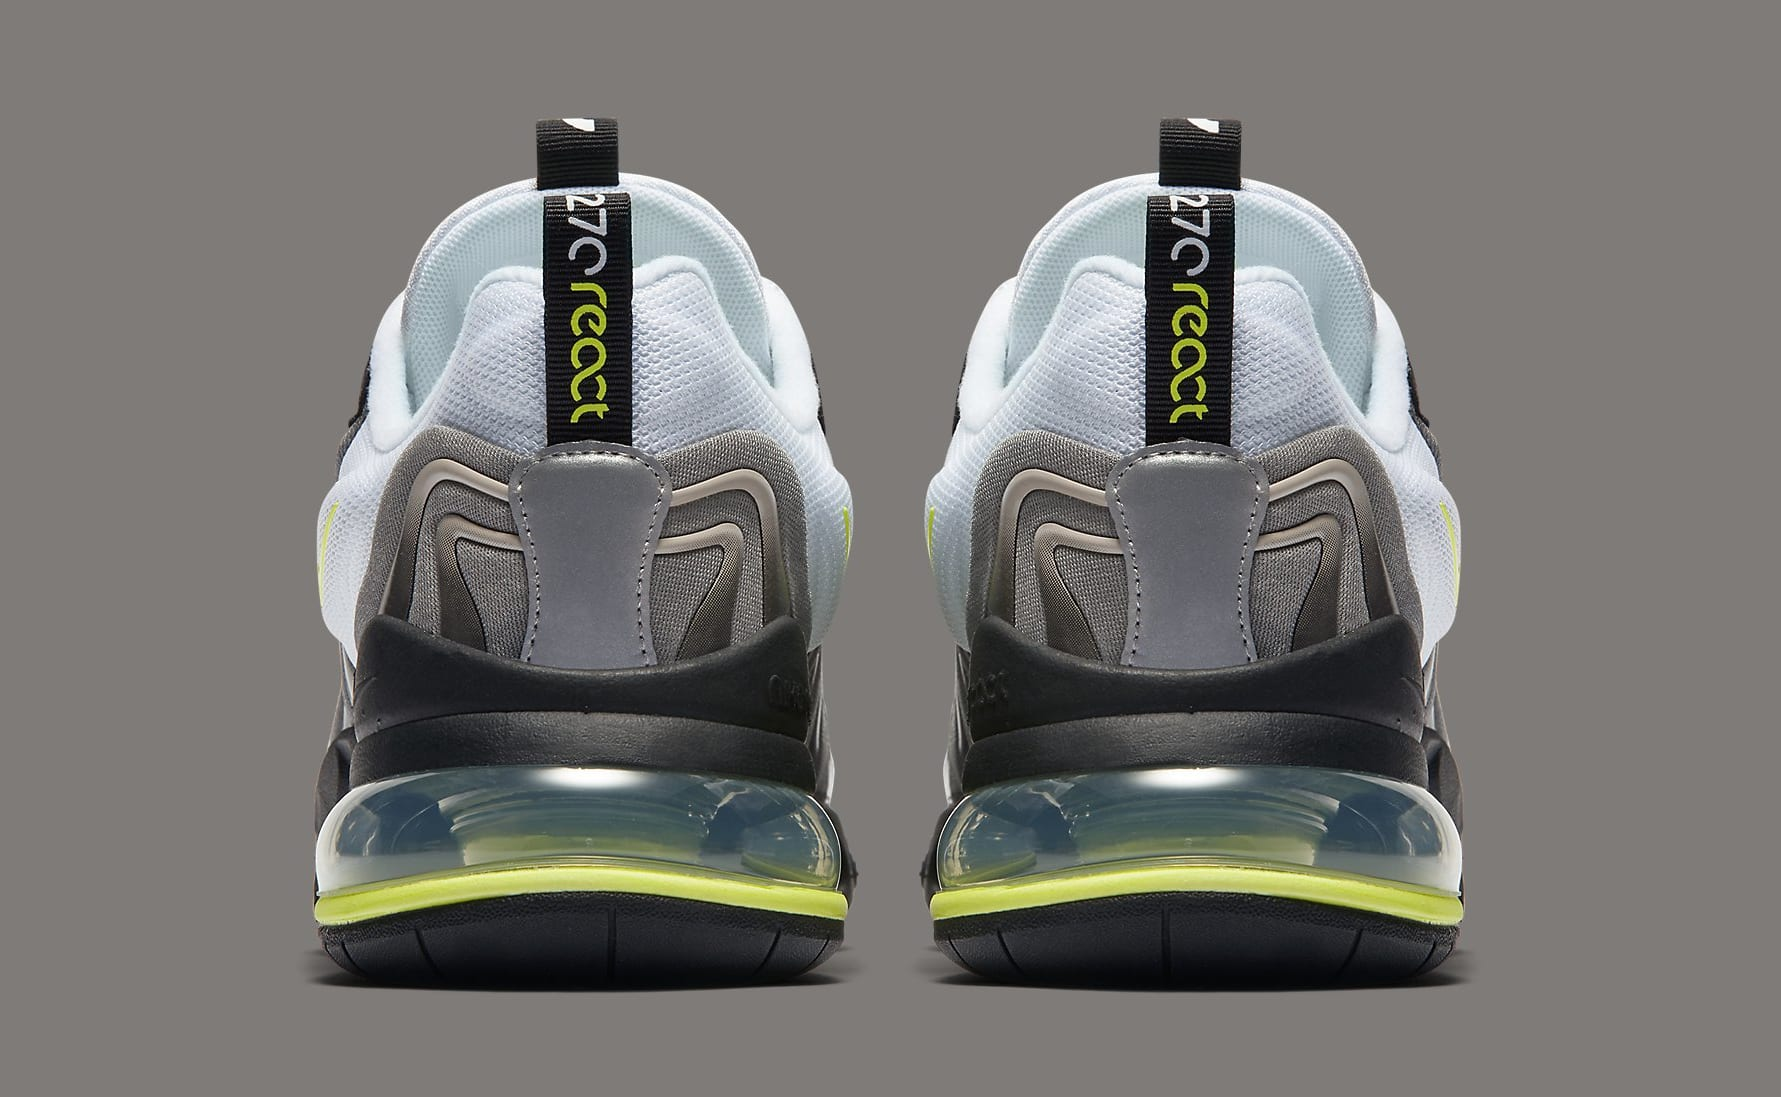 Nike Air Max 270 React Eng Neon Release Date Cw2623 001 Sole Collector